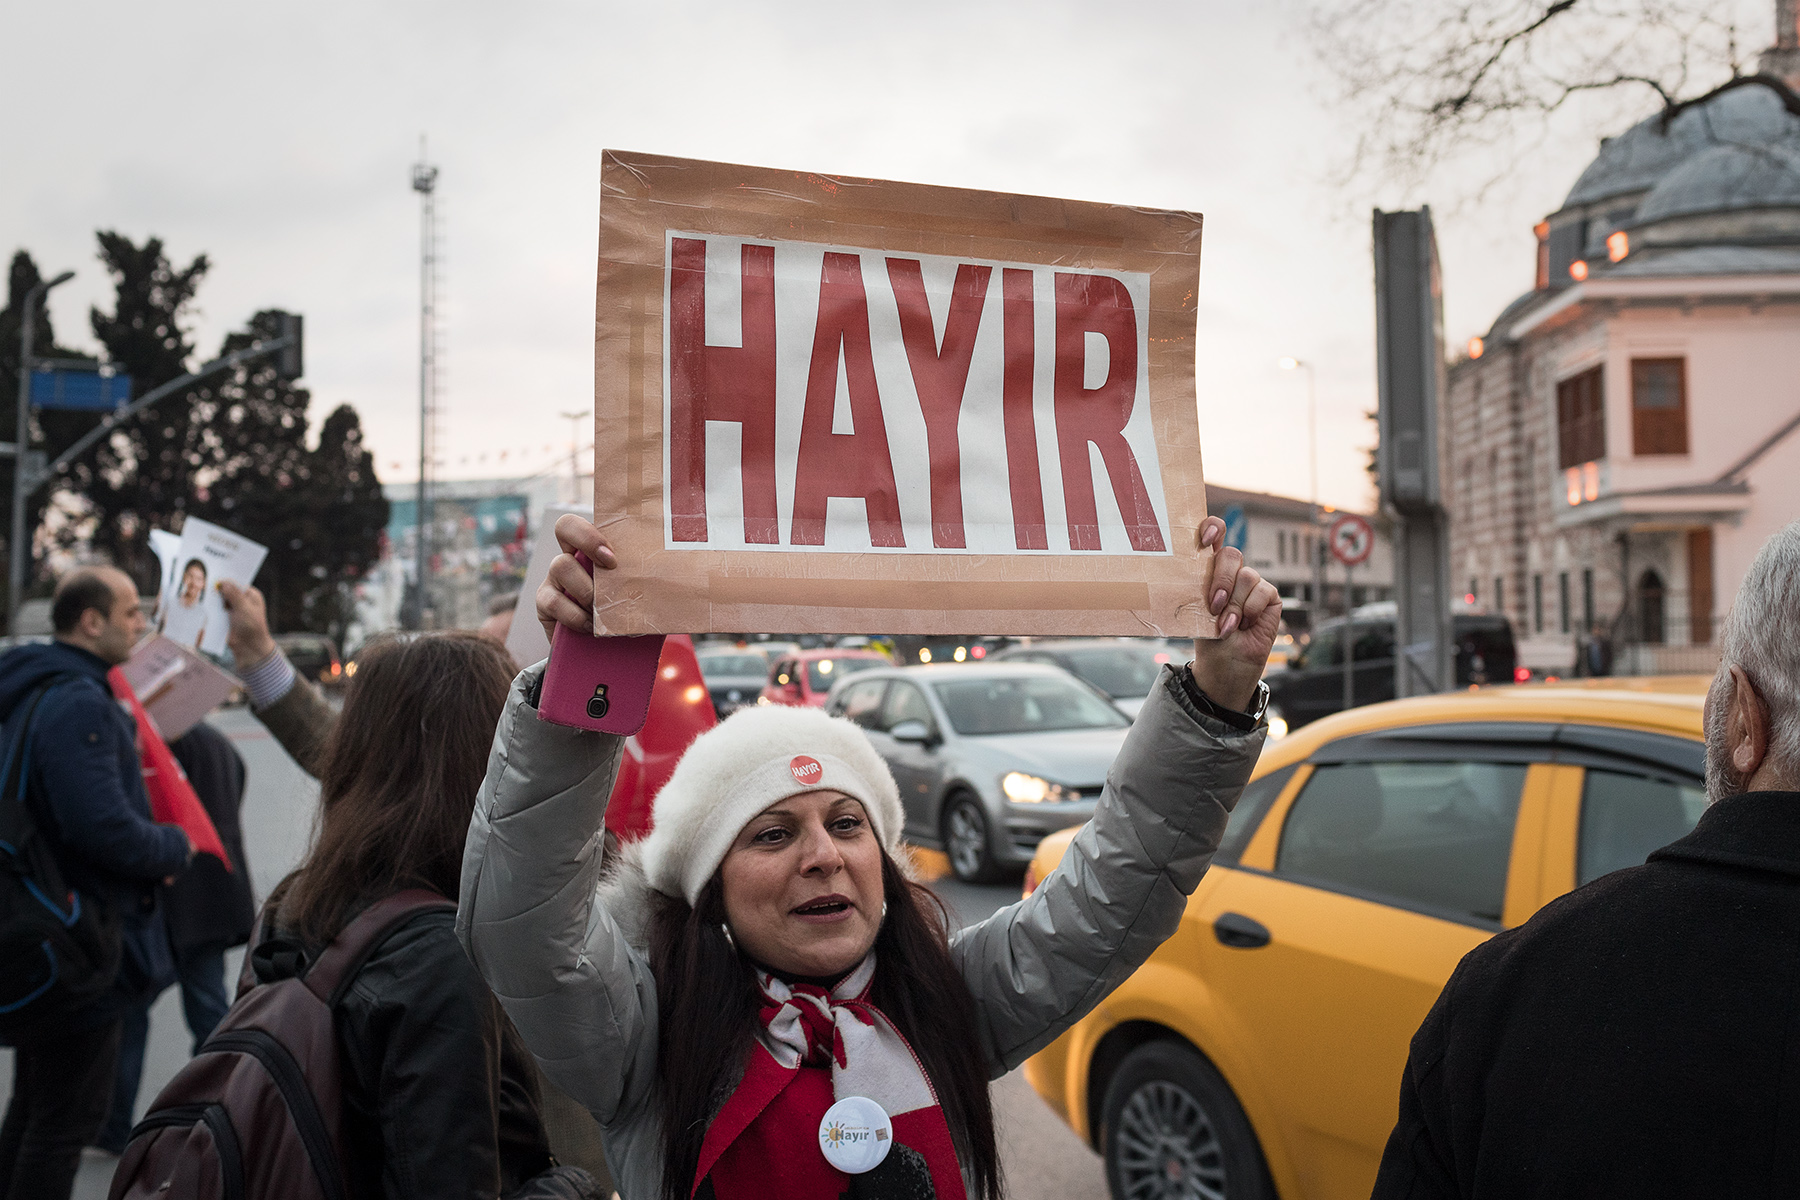 A woman campaigns for the Turkish referendum to say 'no' (hayir) on constitutional changes despite the electoral truce in Istanbul, Turkey on April 12, 2017.